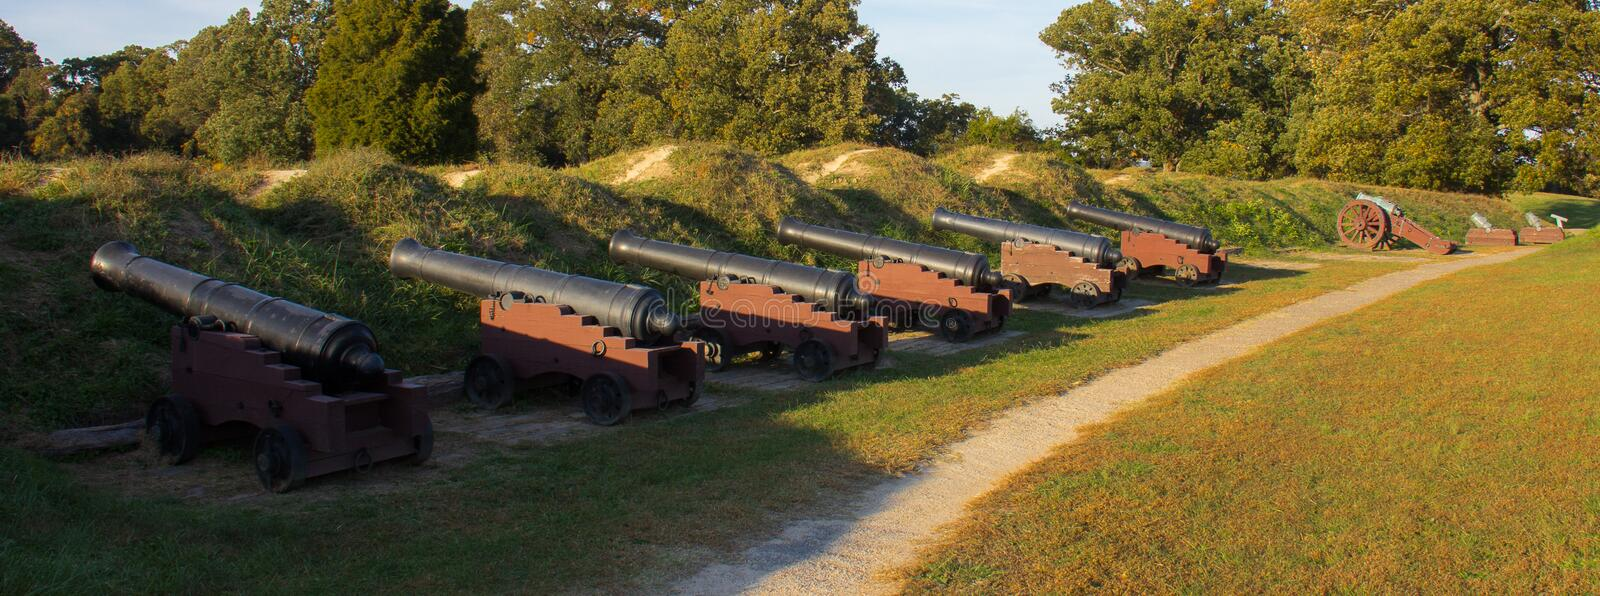 Revolutionary Era Cannons at the Yorktown Battlefield. Revolutionary War era cannons at the National Yorktown Battlefield Park in Yorktown, Virginia stock images